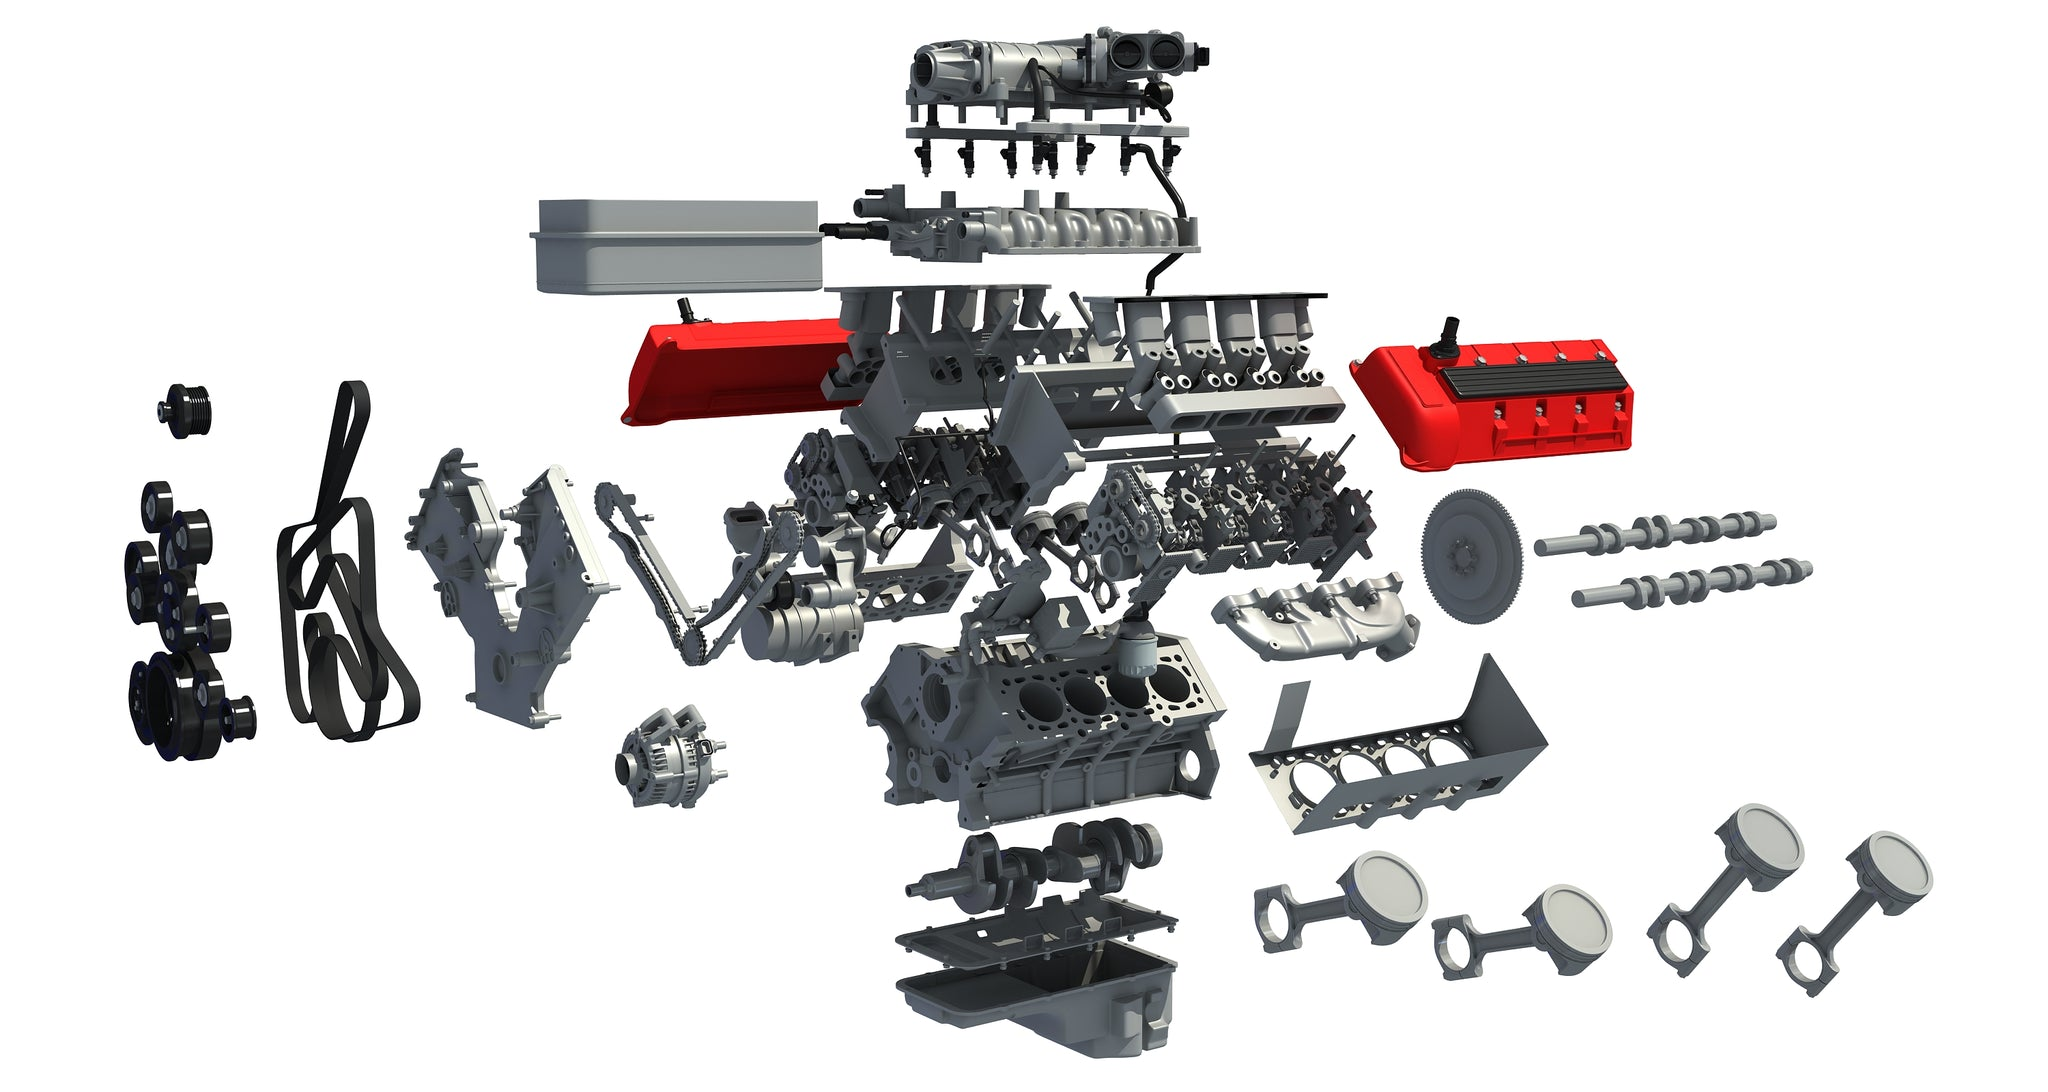 V8 Engine with Interior Parts